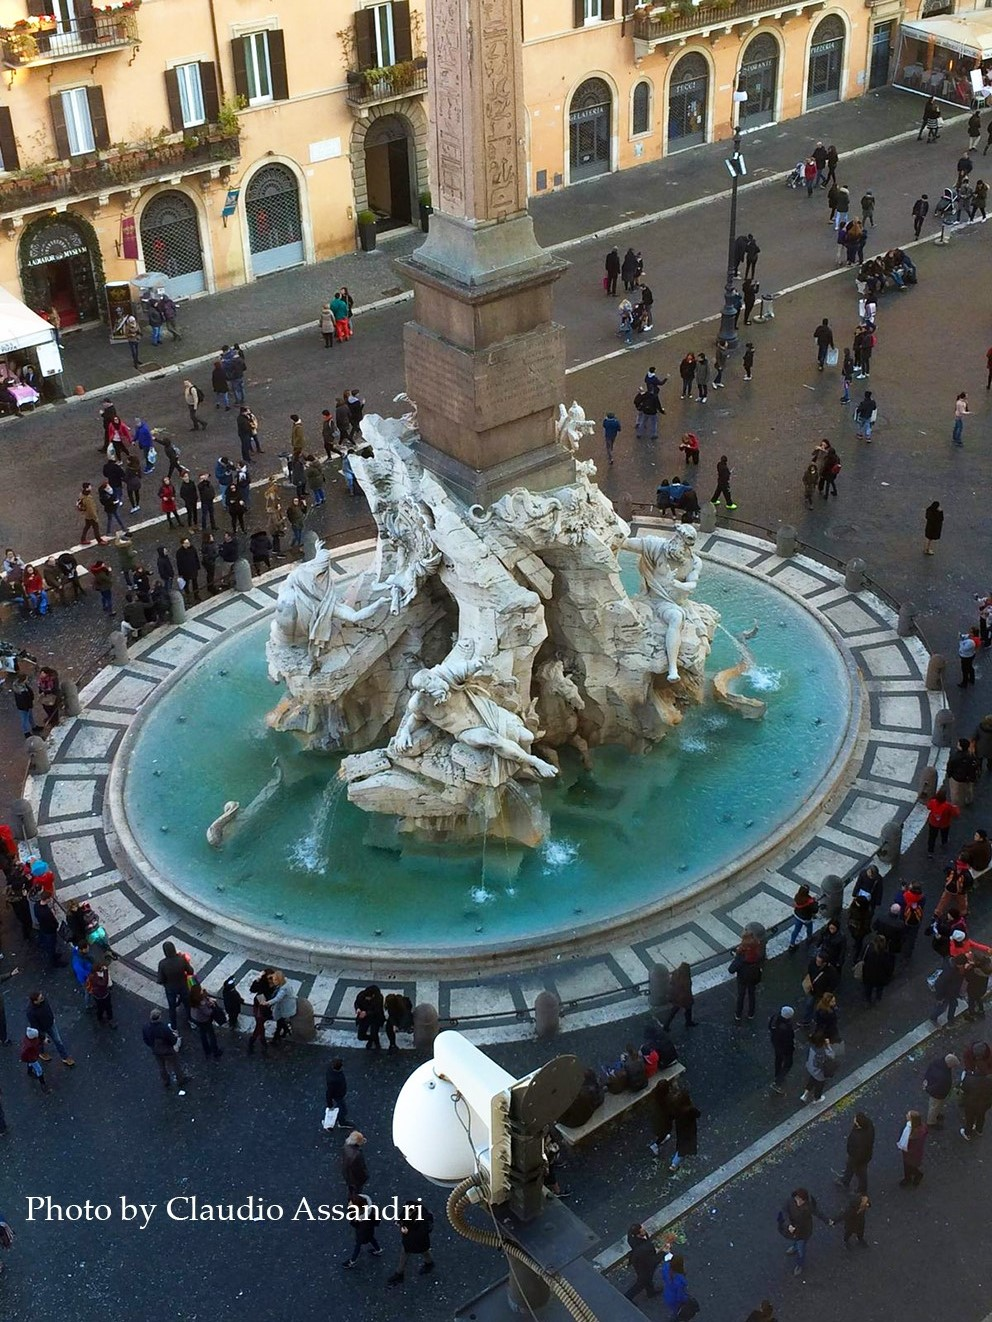 Walking Rome with Claudio Assandri Piazza Navona, Rome at Italian Summers